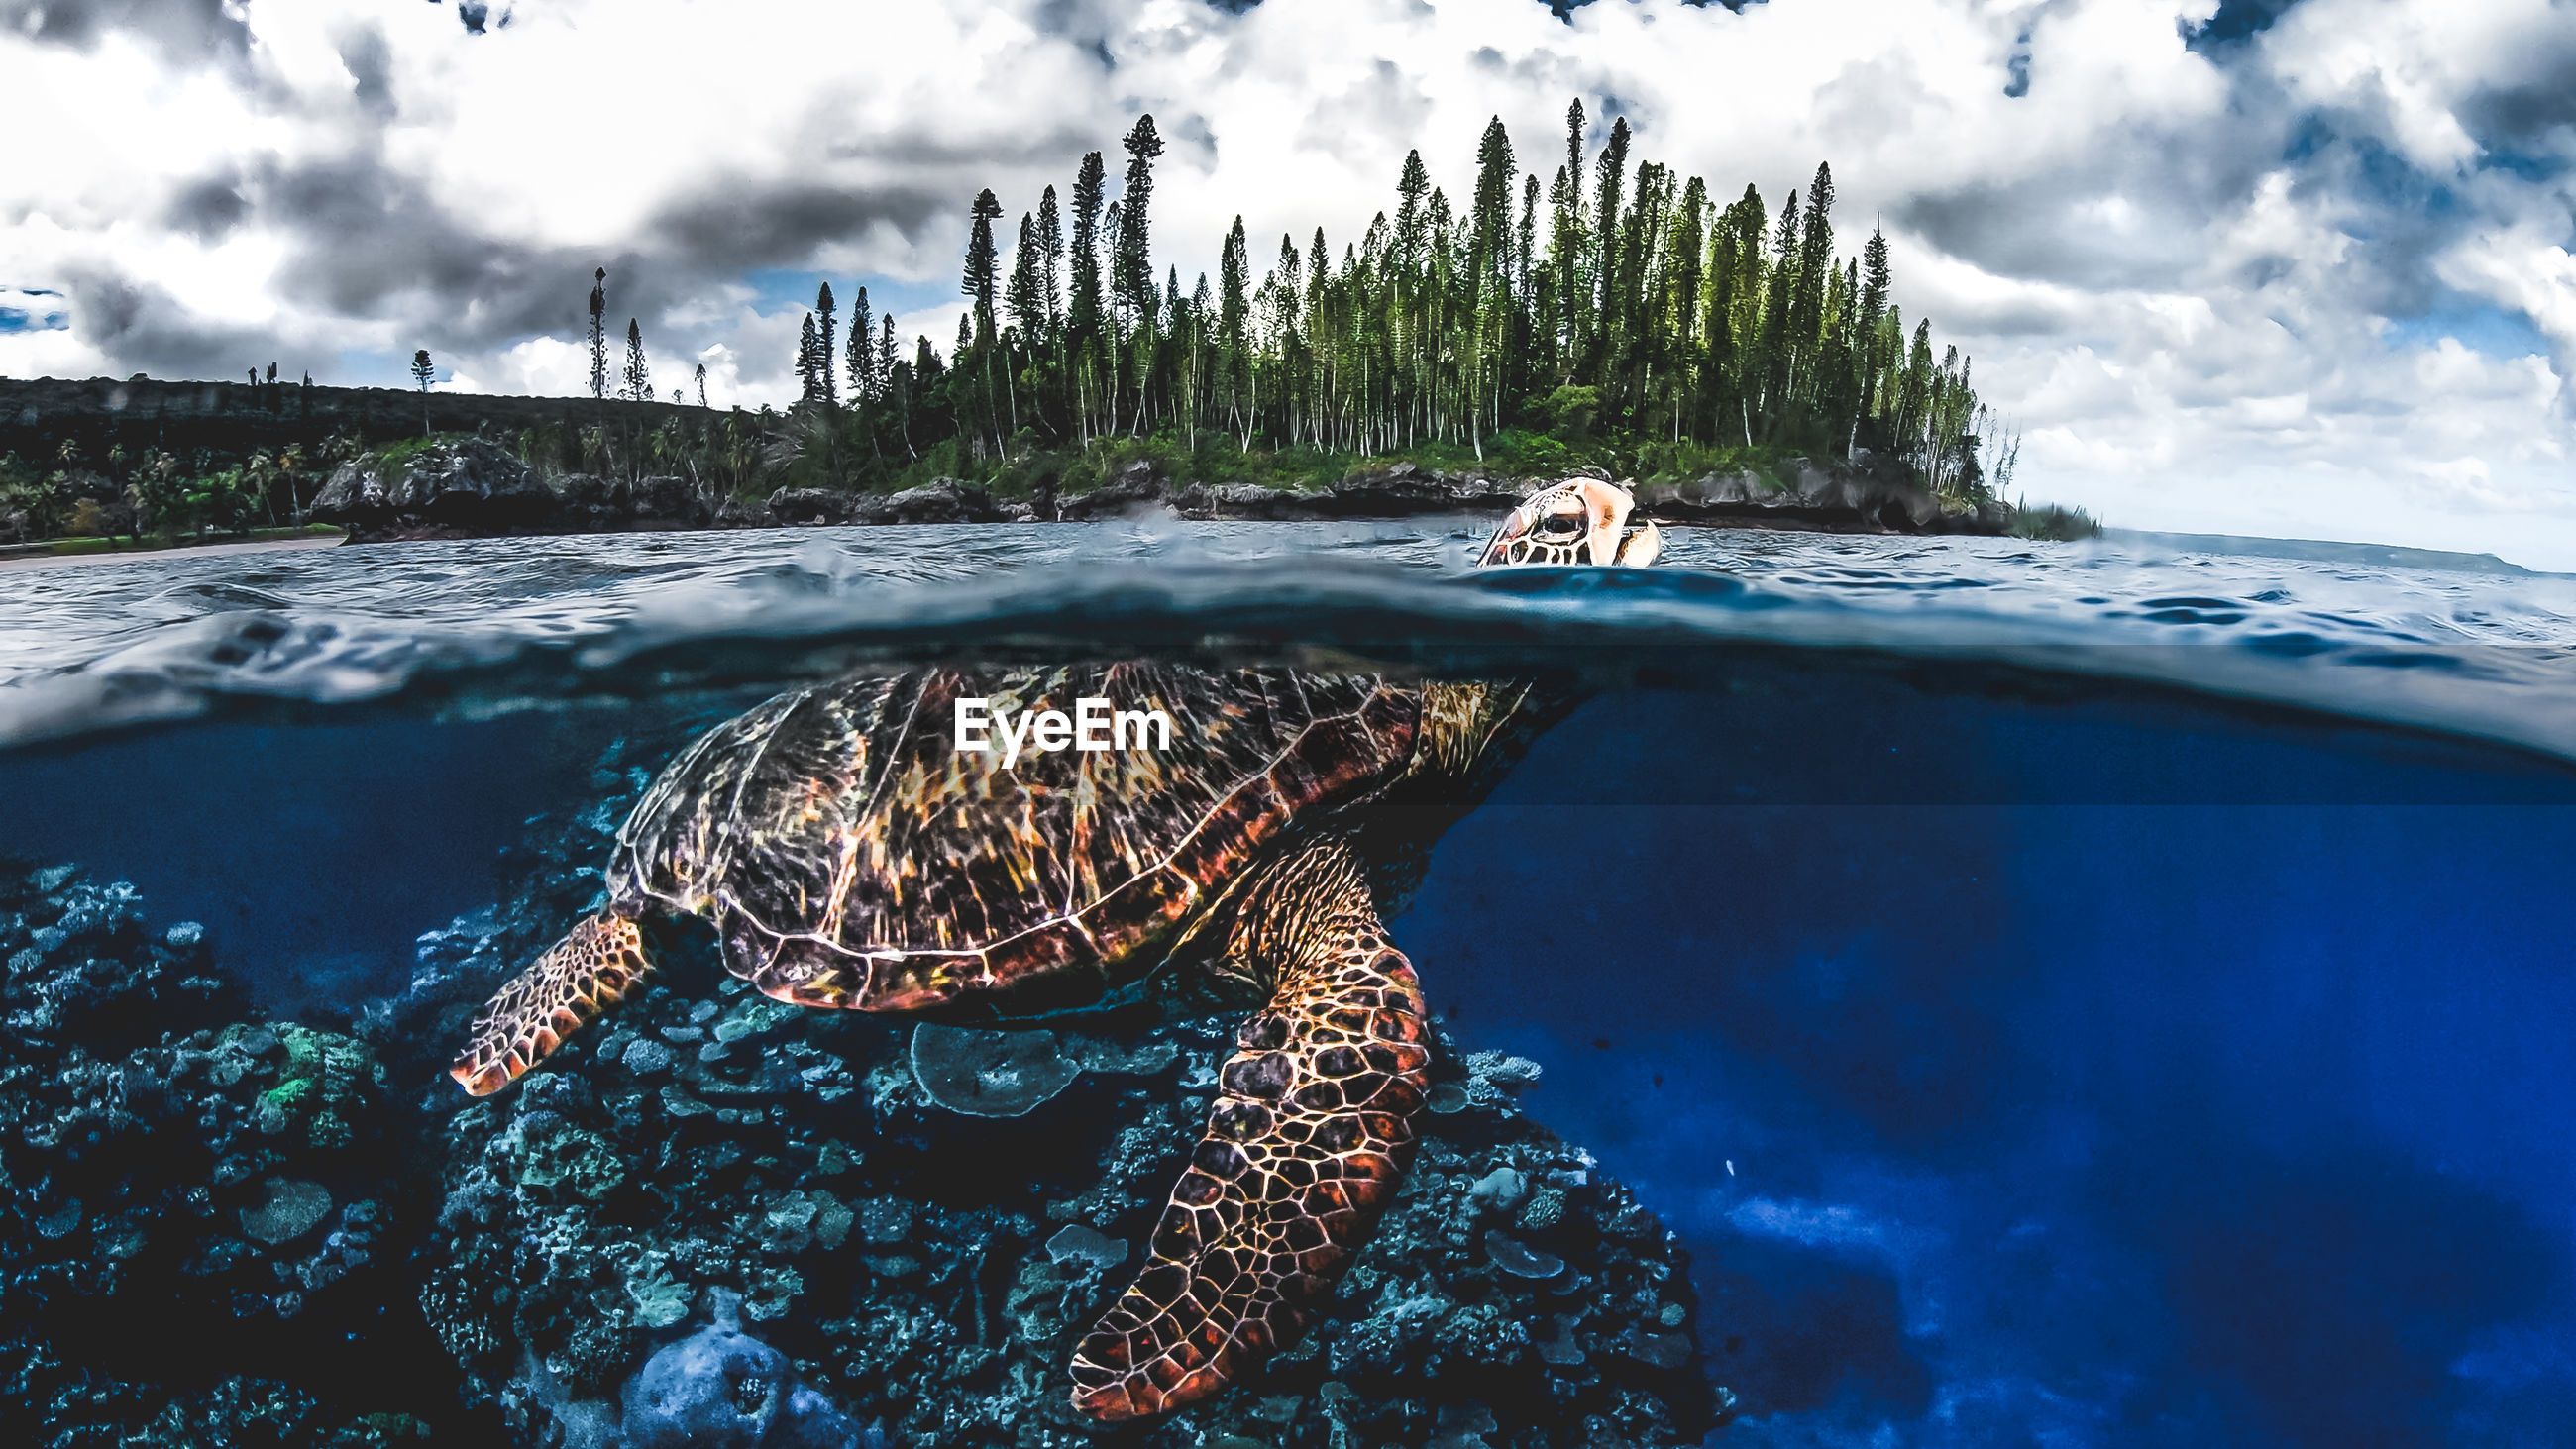 AERIAL VIEW OF SEA TURTLE SWIMMING IN WATER